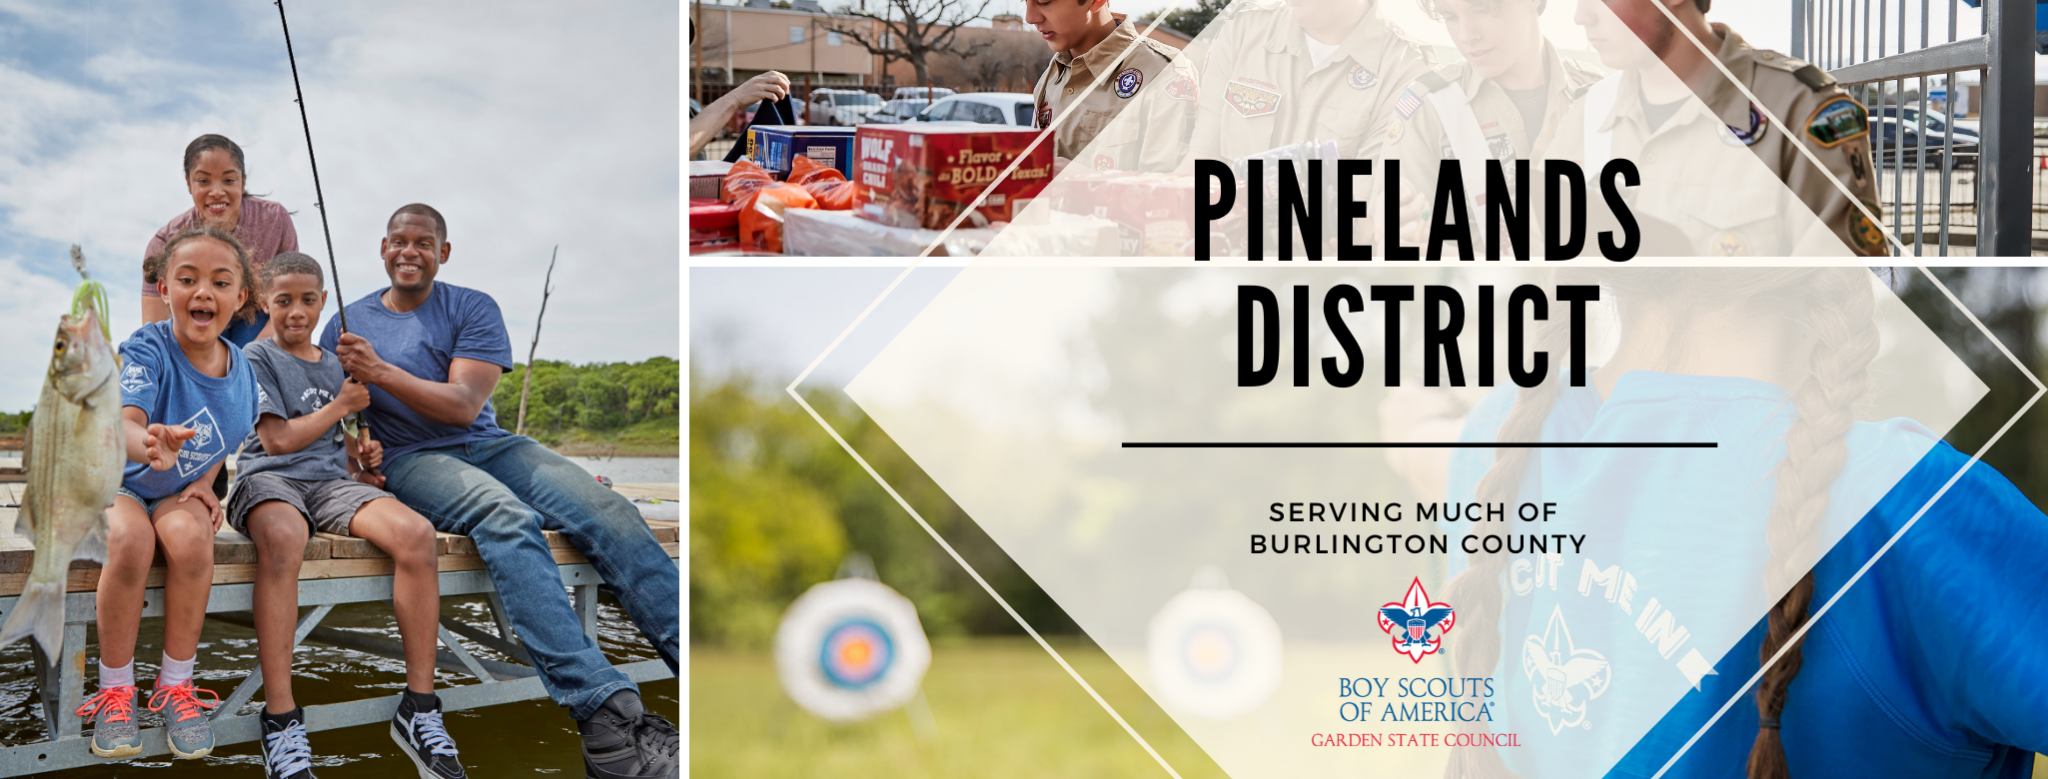 Pinelands District, Garden State Council, BSA serves a youth in Scouting throughout Burlington County, New Jersey